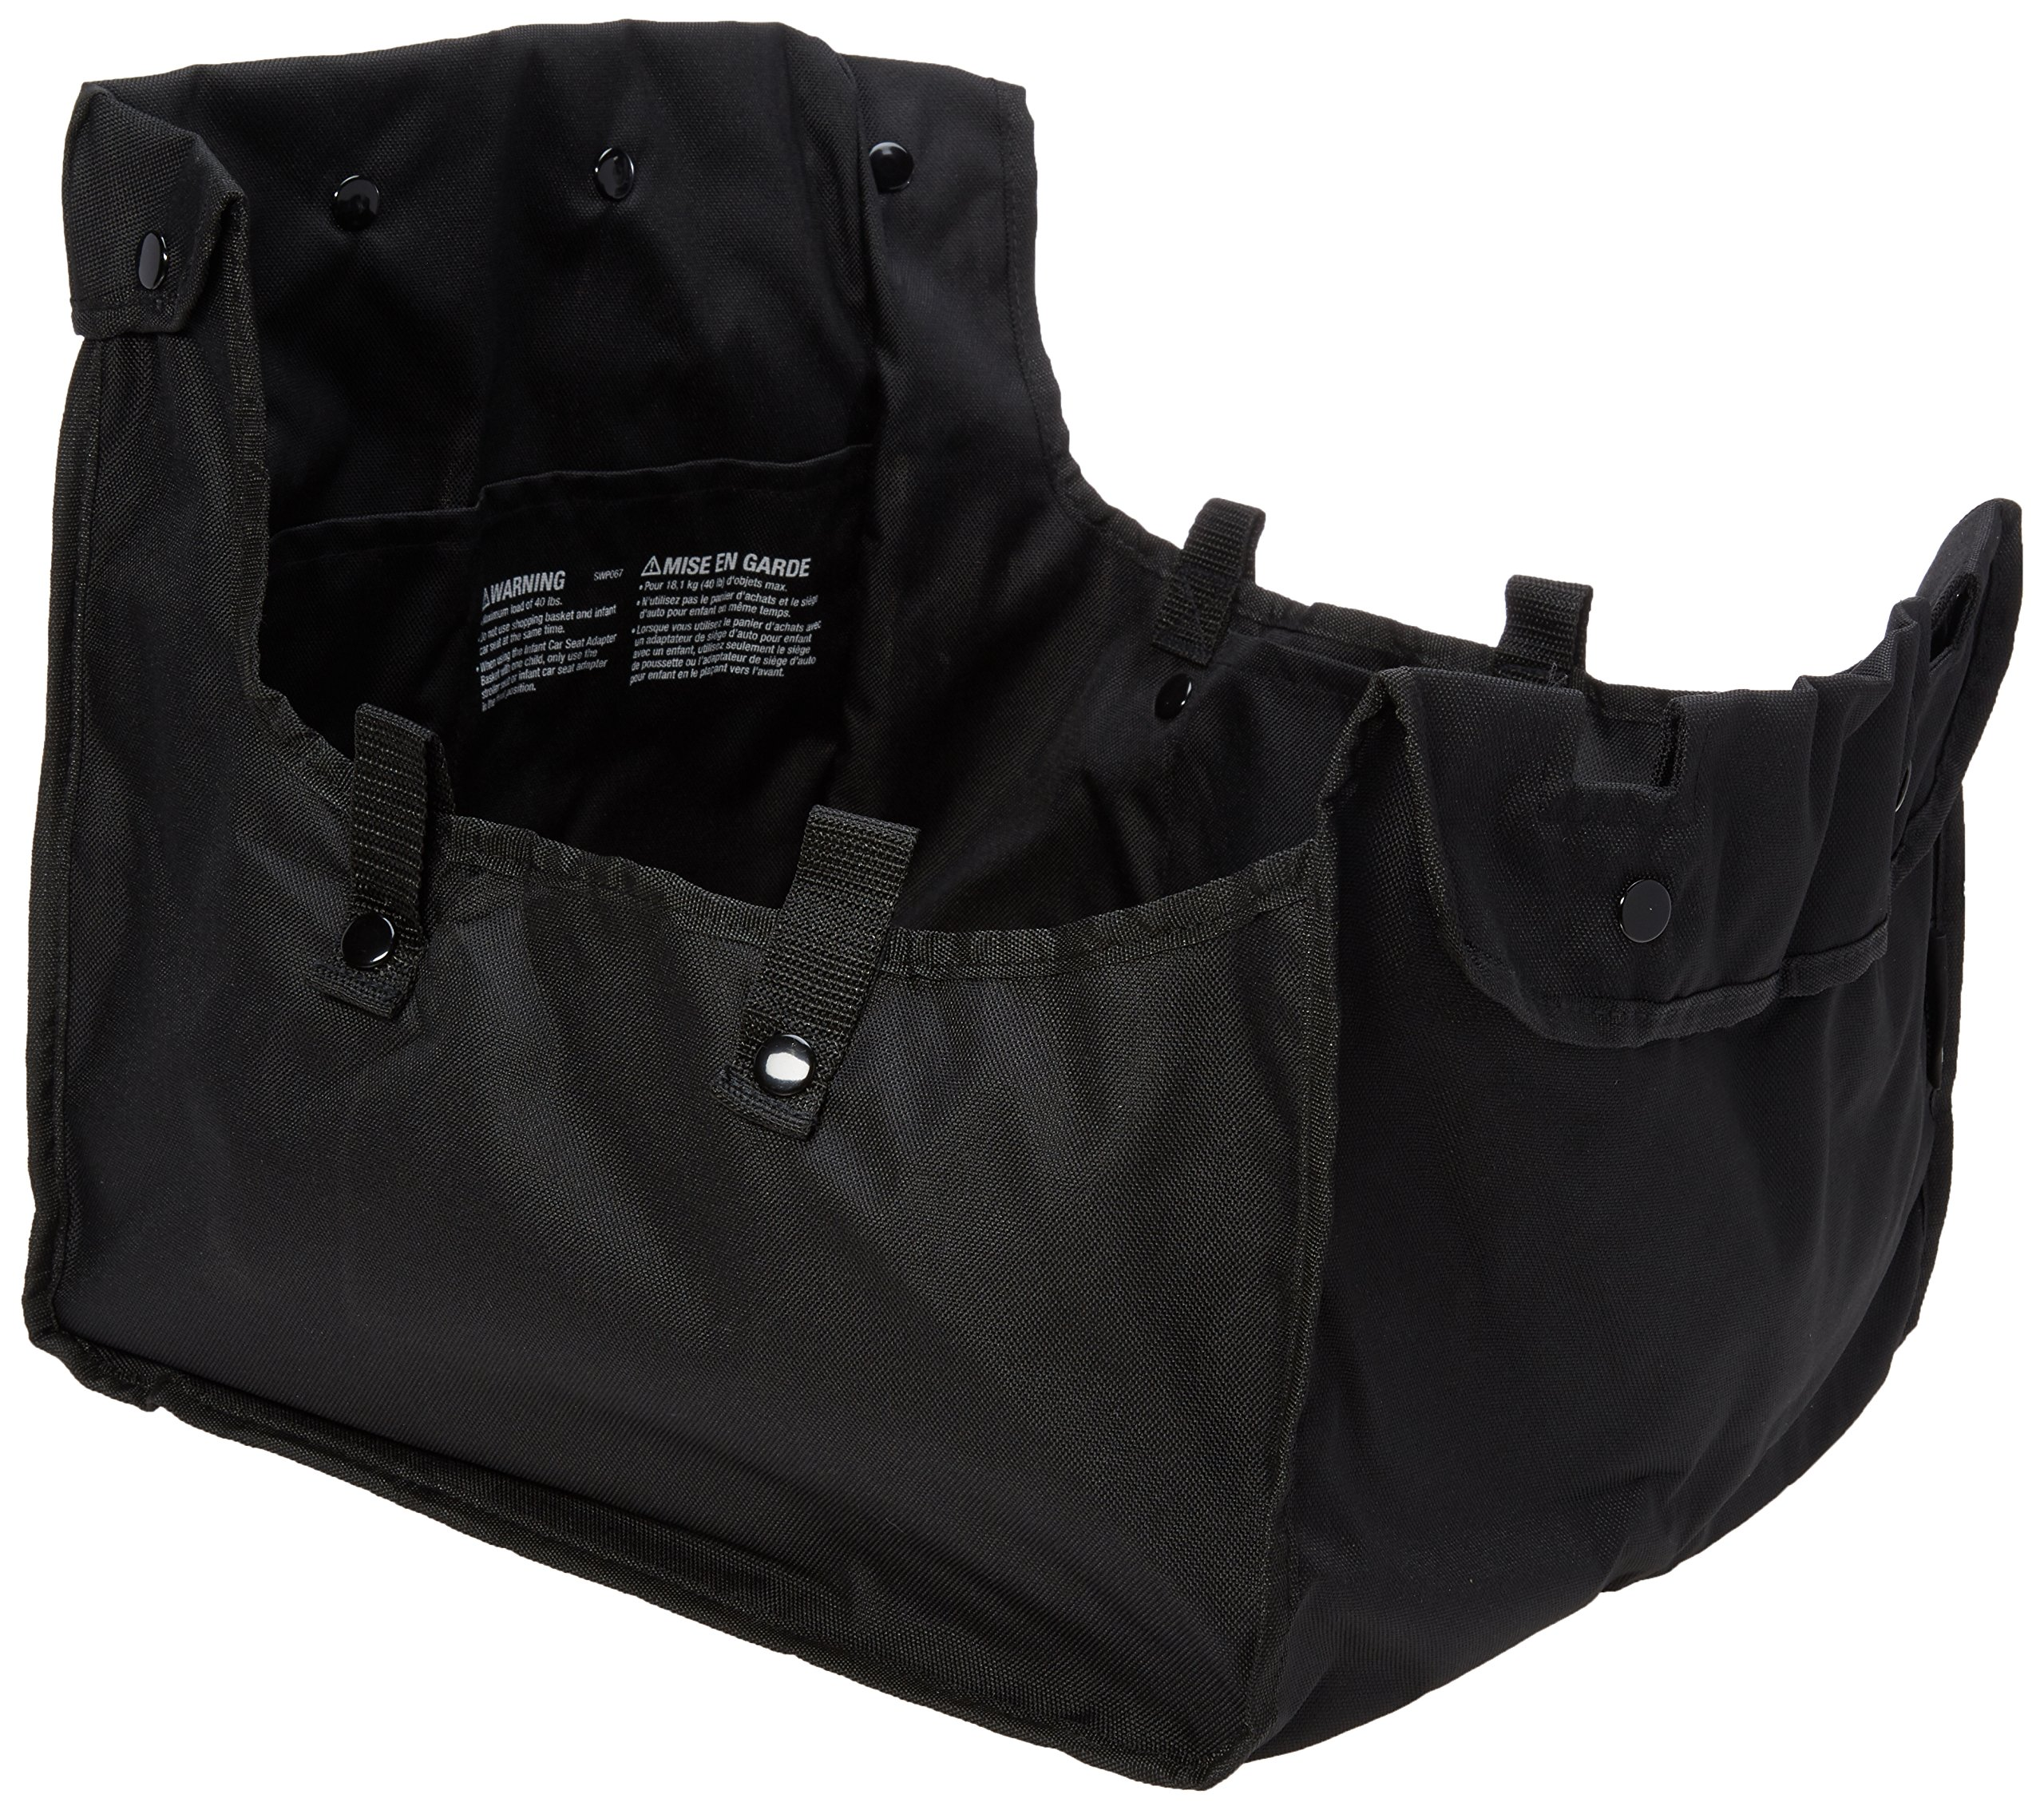 Contours Stroller Shopping Basket Accessory for Contours Strollers (Adapter Sold Separately)